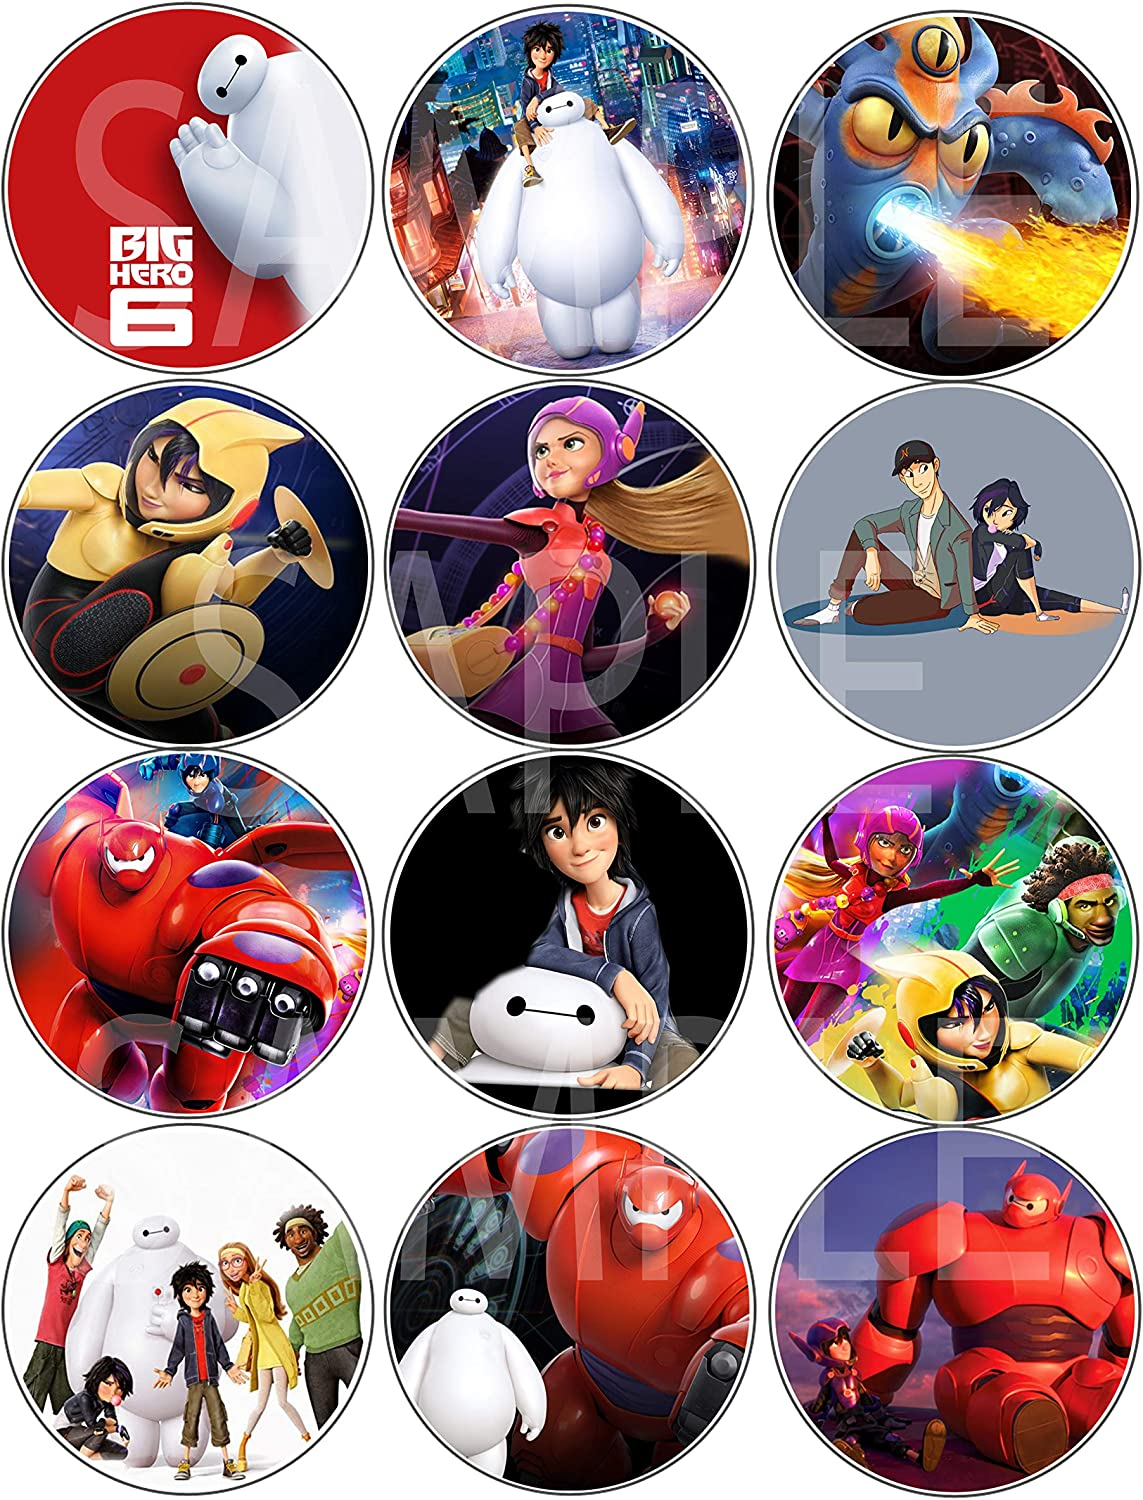 Amazon Com Djzdealz Big Hero 6 Baymax Buttons Movie Party Favors Supplies Decorations Collectible Metal Pinback Buttons Pins Large 2 25 12 Pcs Toys Games